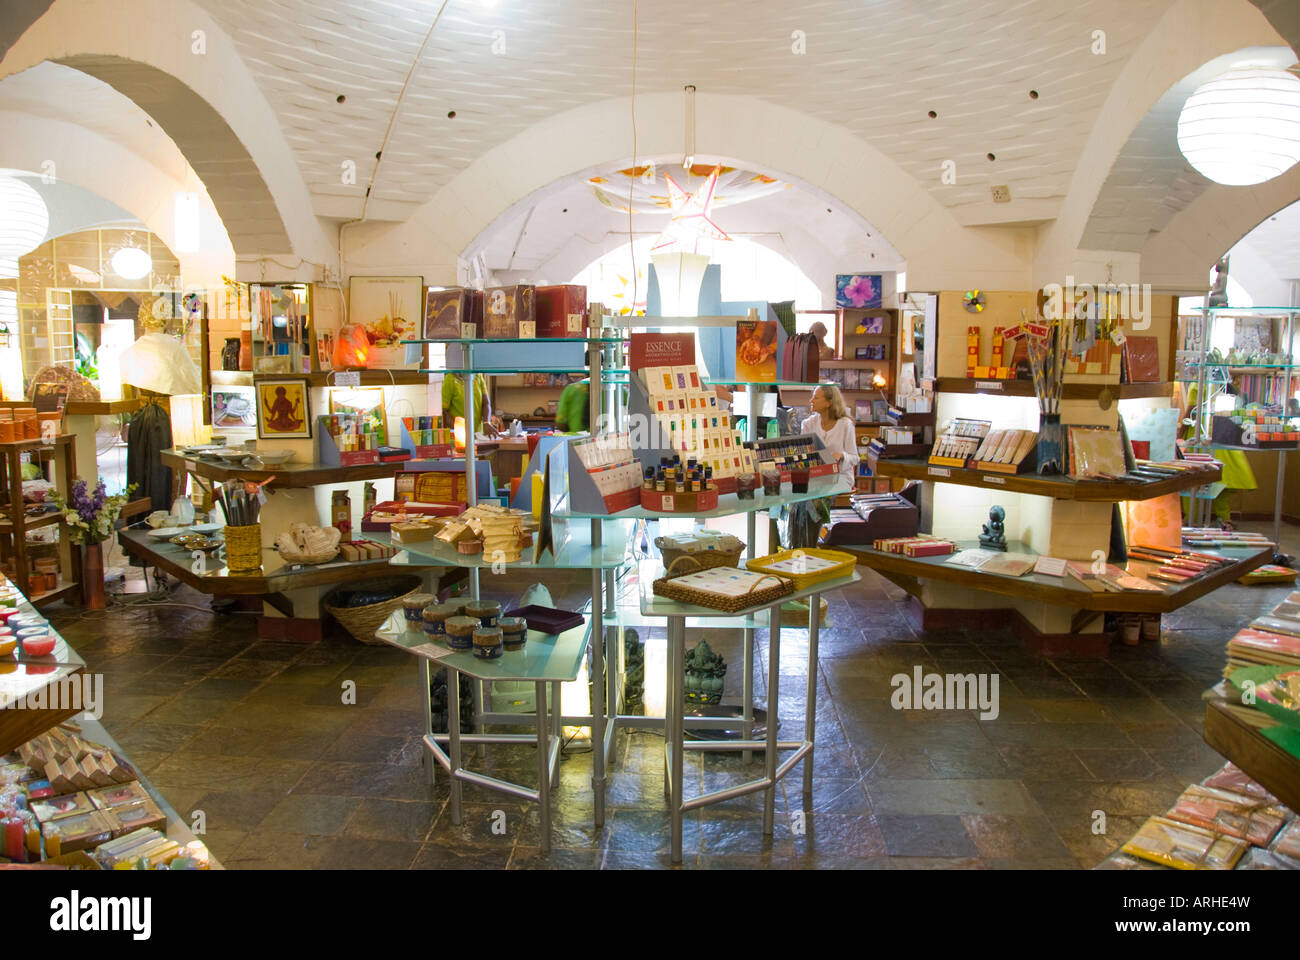 A shop selling products produced in auroville india stock for Selling home interior products